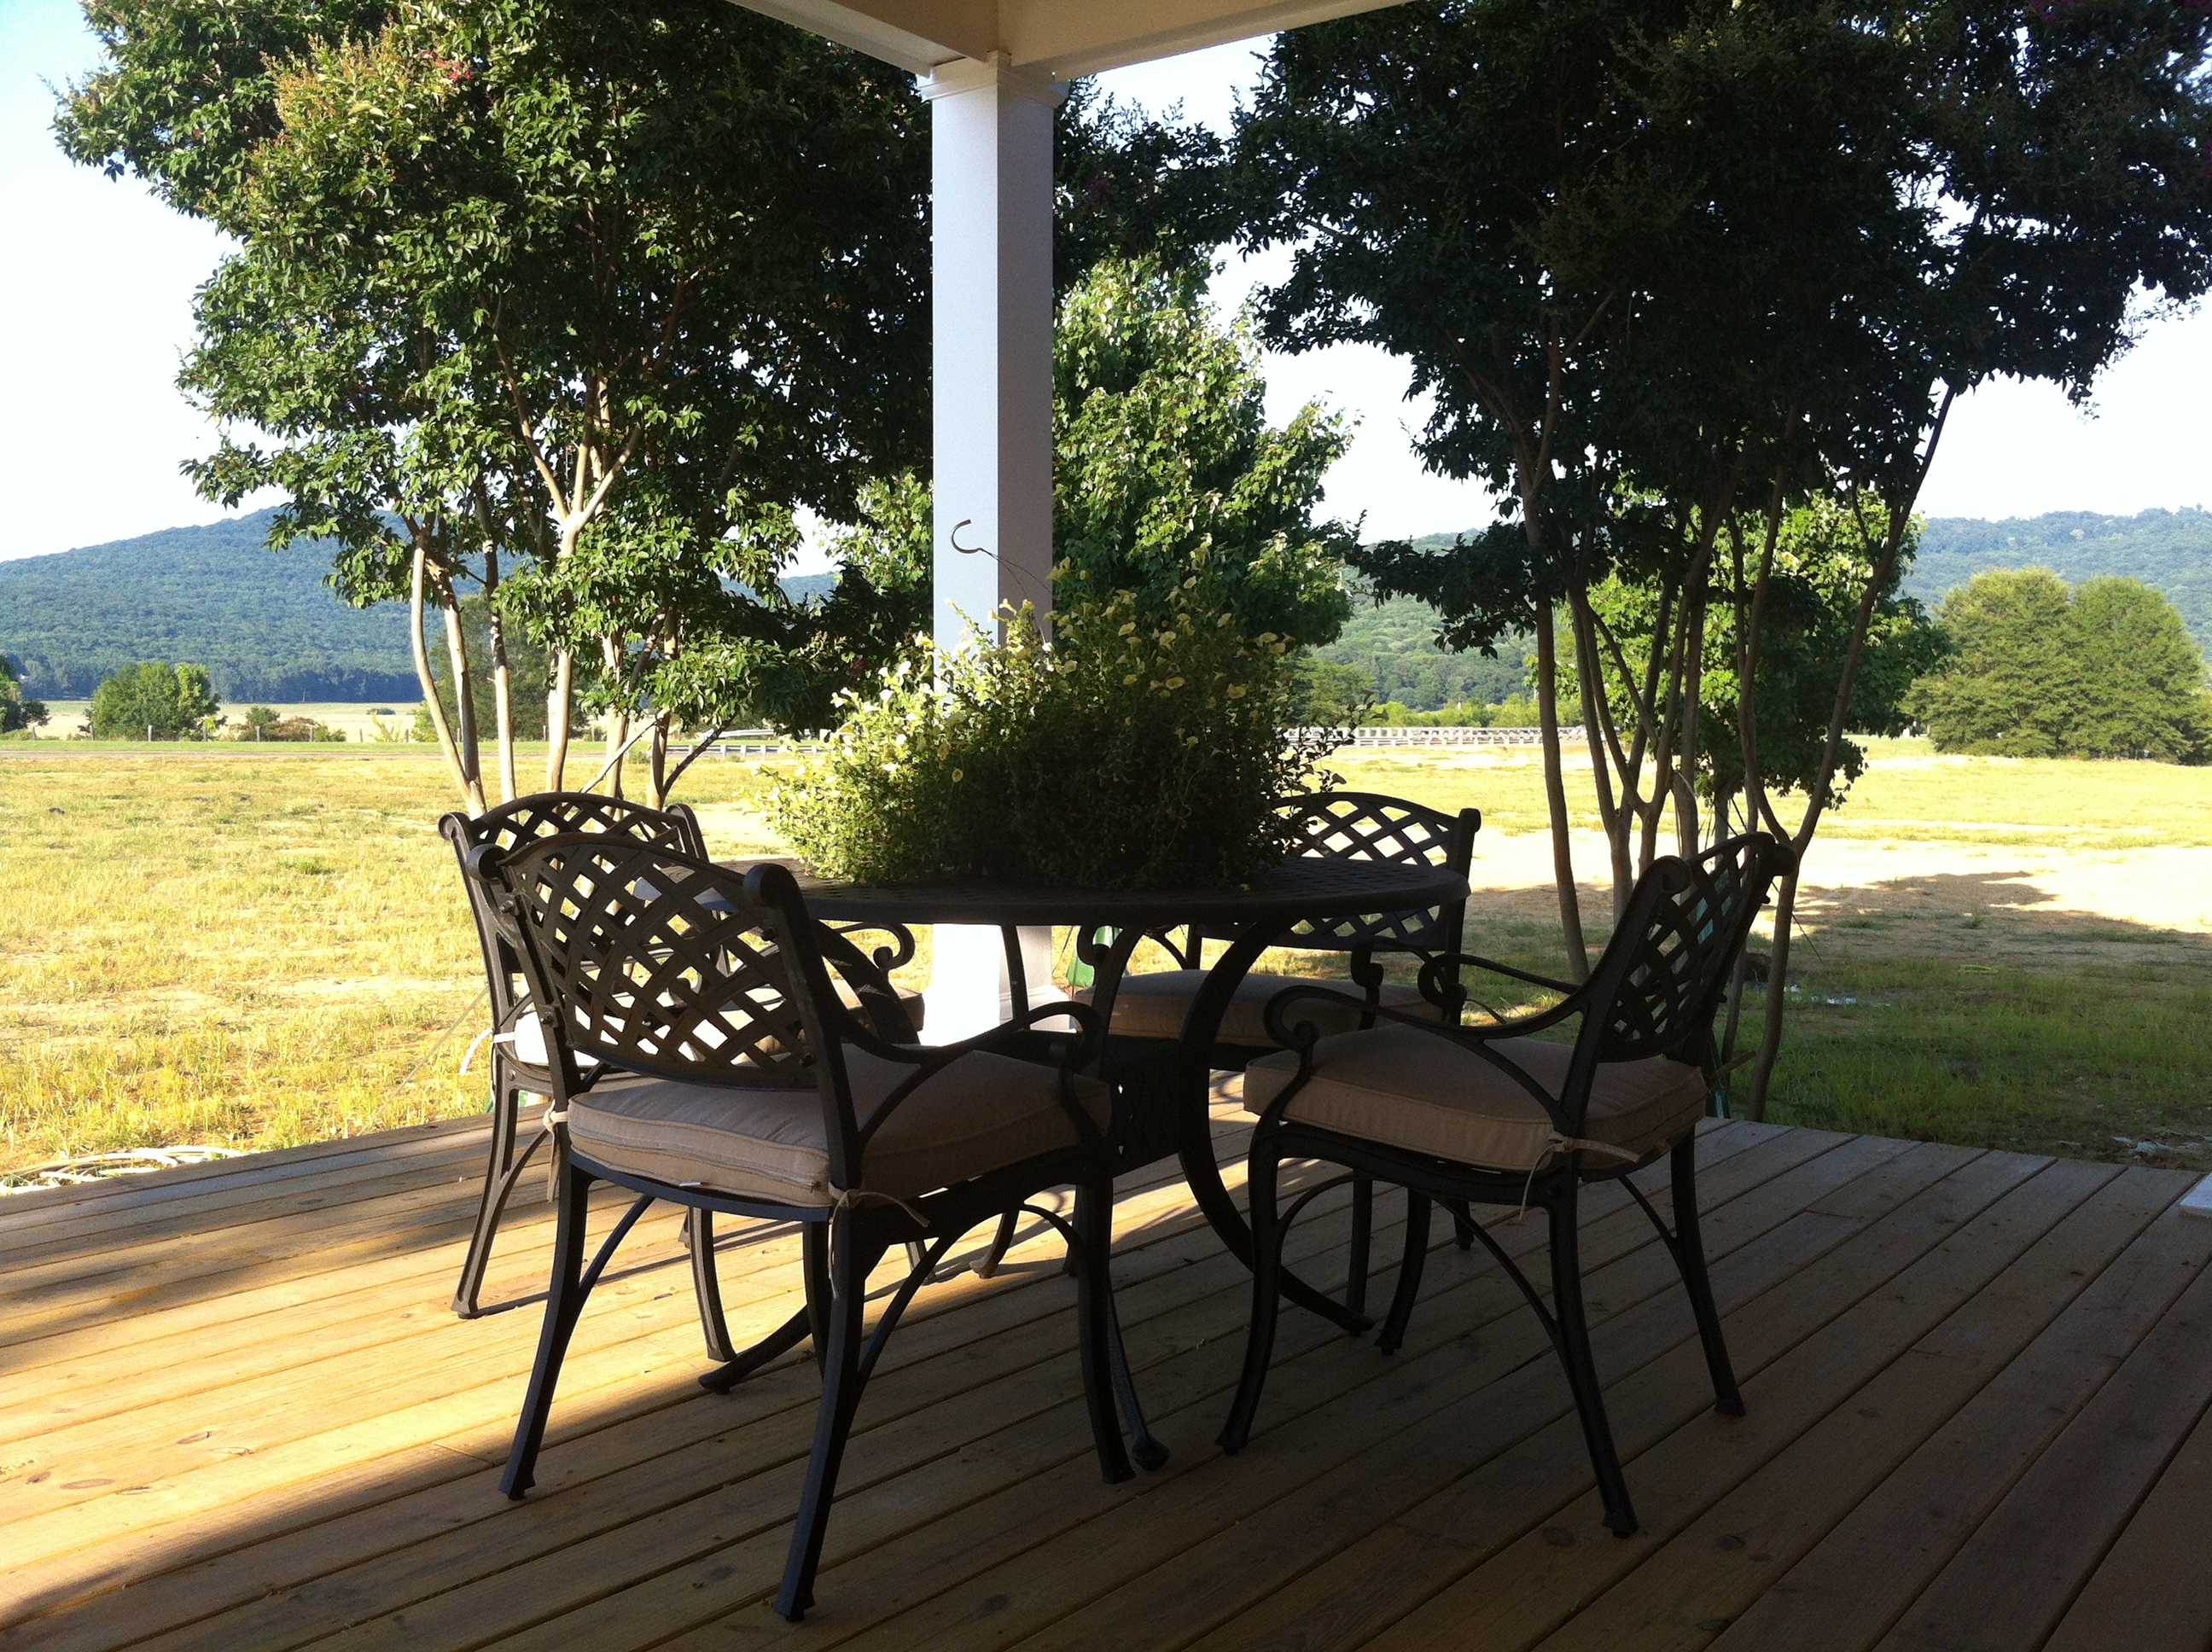 Find some shade, pull up a seat, and chat on our Welcome Center's new Front Porch